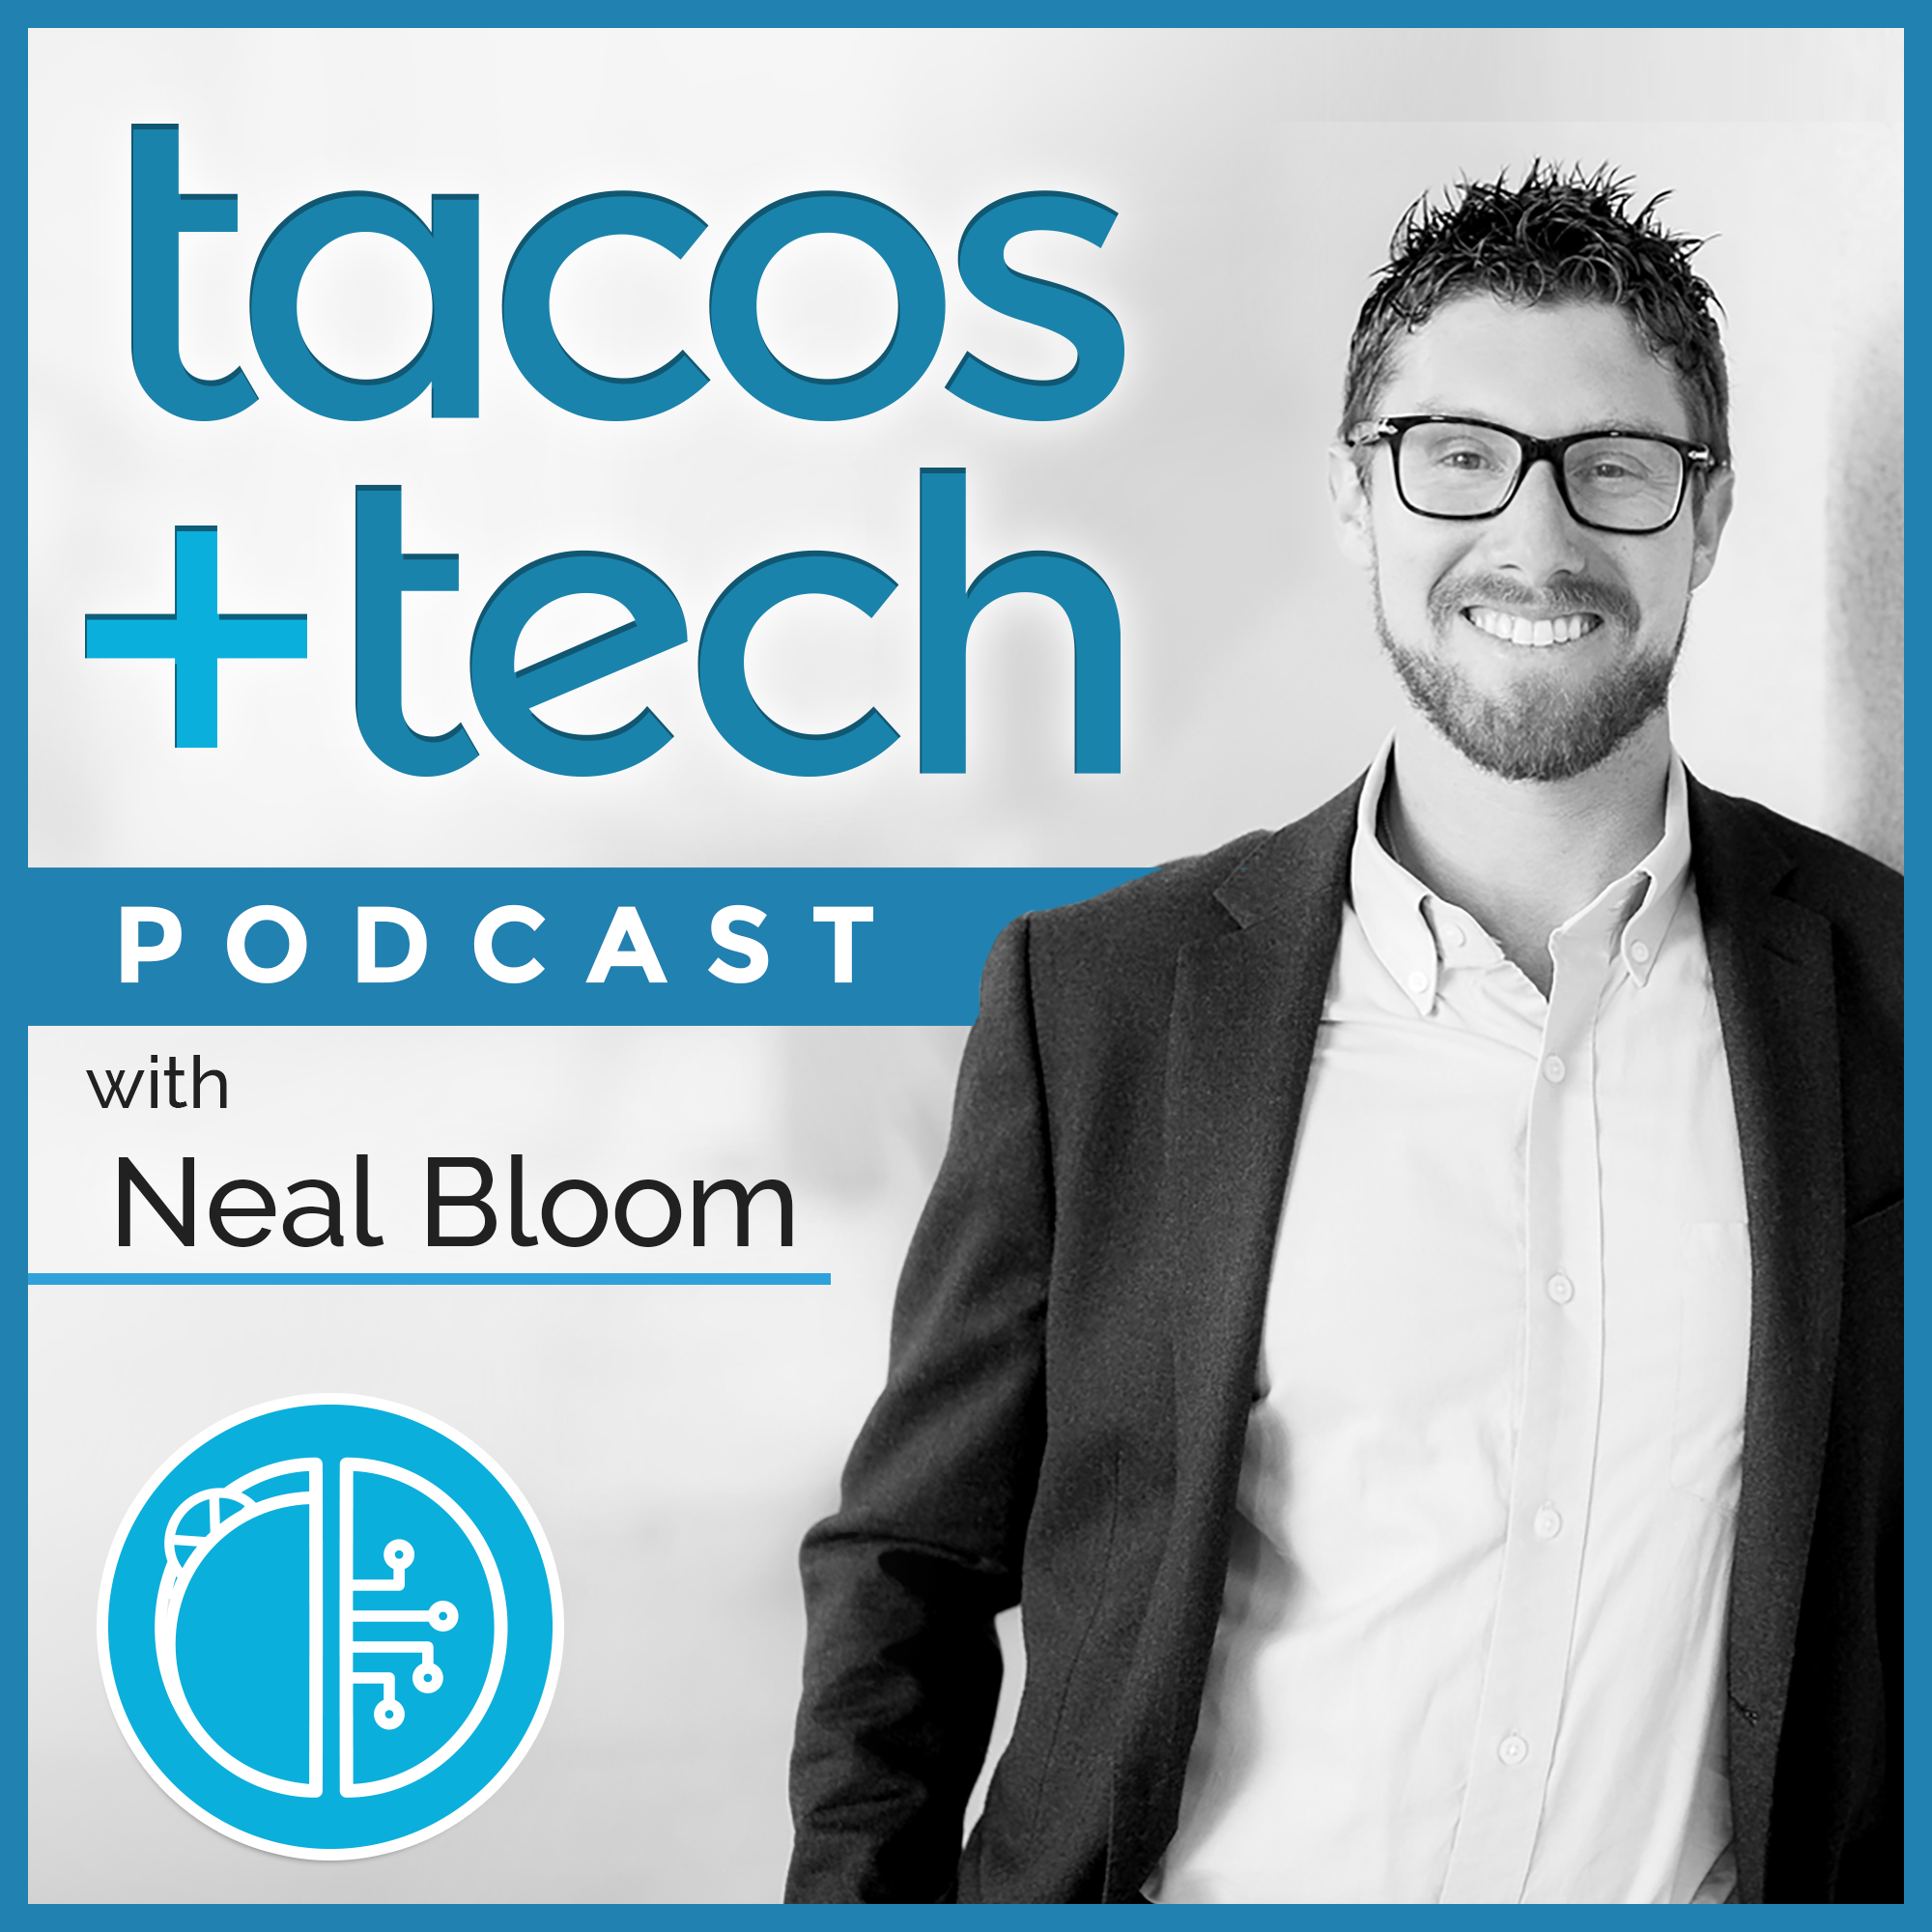 Tacos and Tech Podcast podcast show image